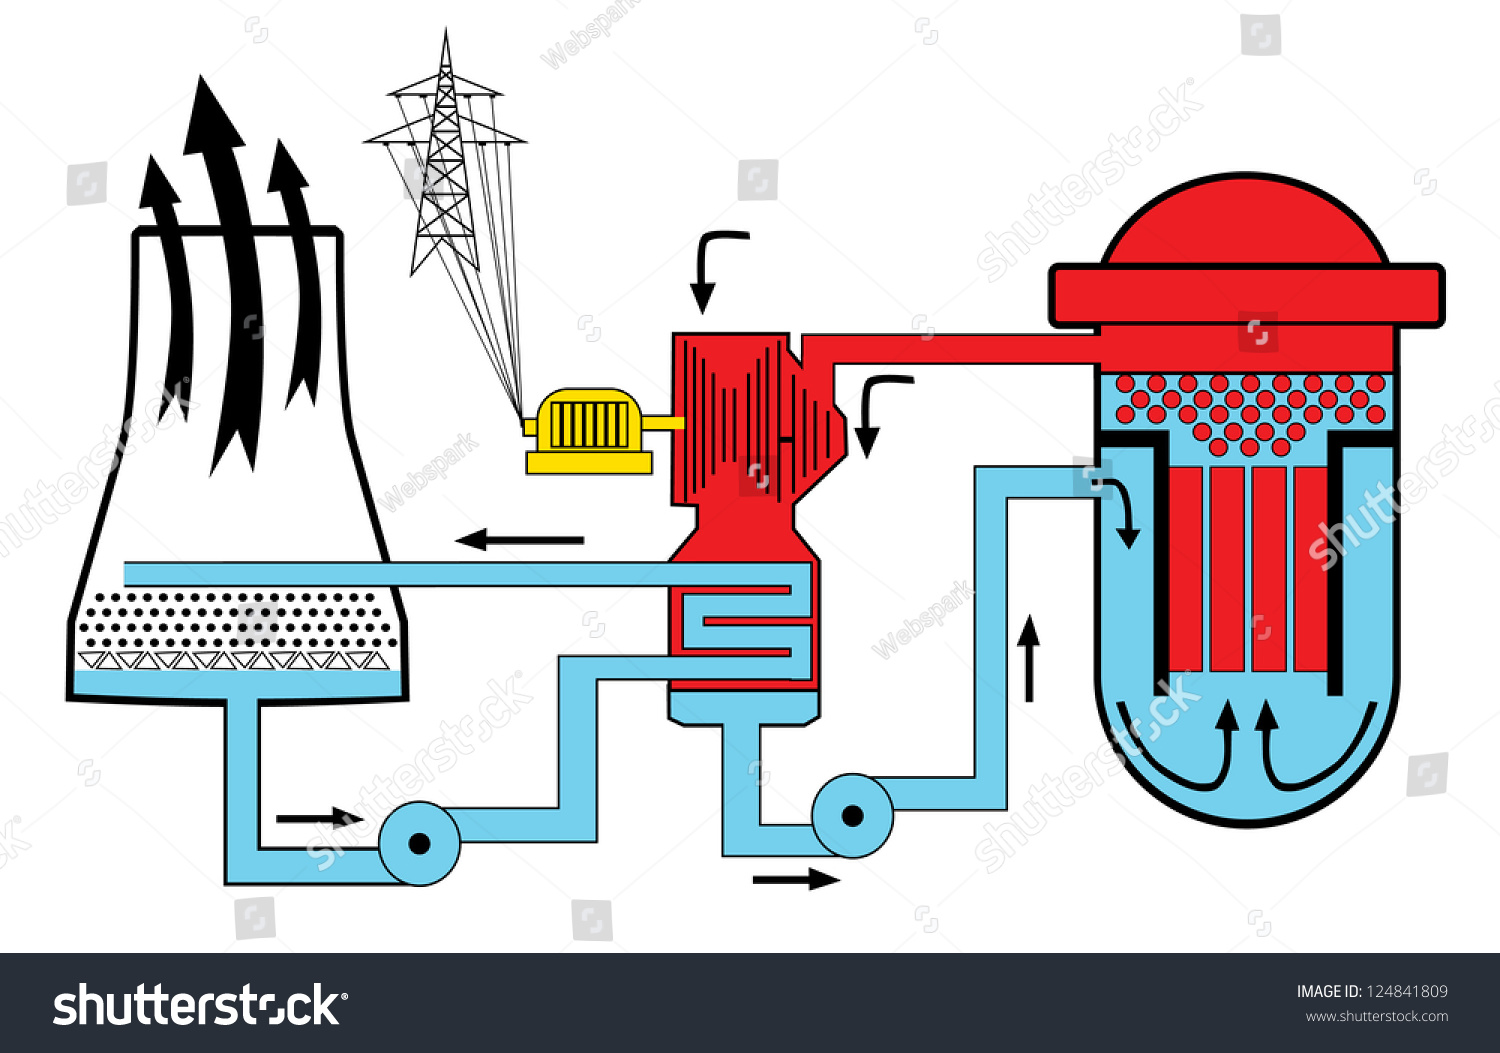 nuclear energy diagram and explanation simple neuron unlabeled power stock vector illustration 124841809